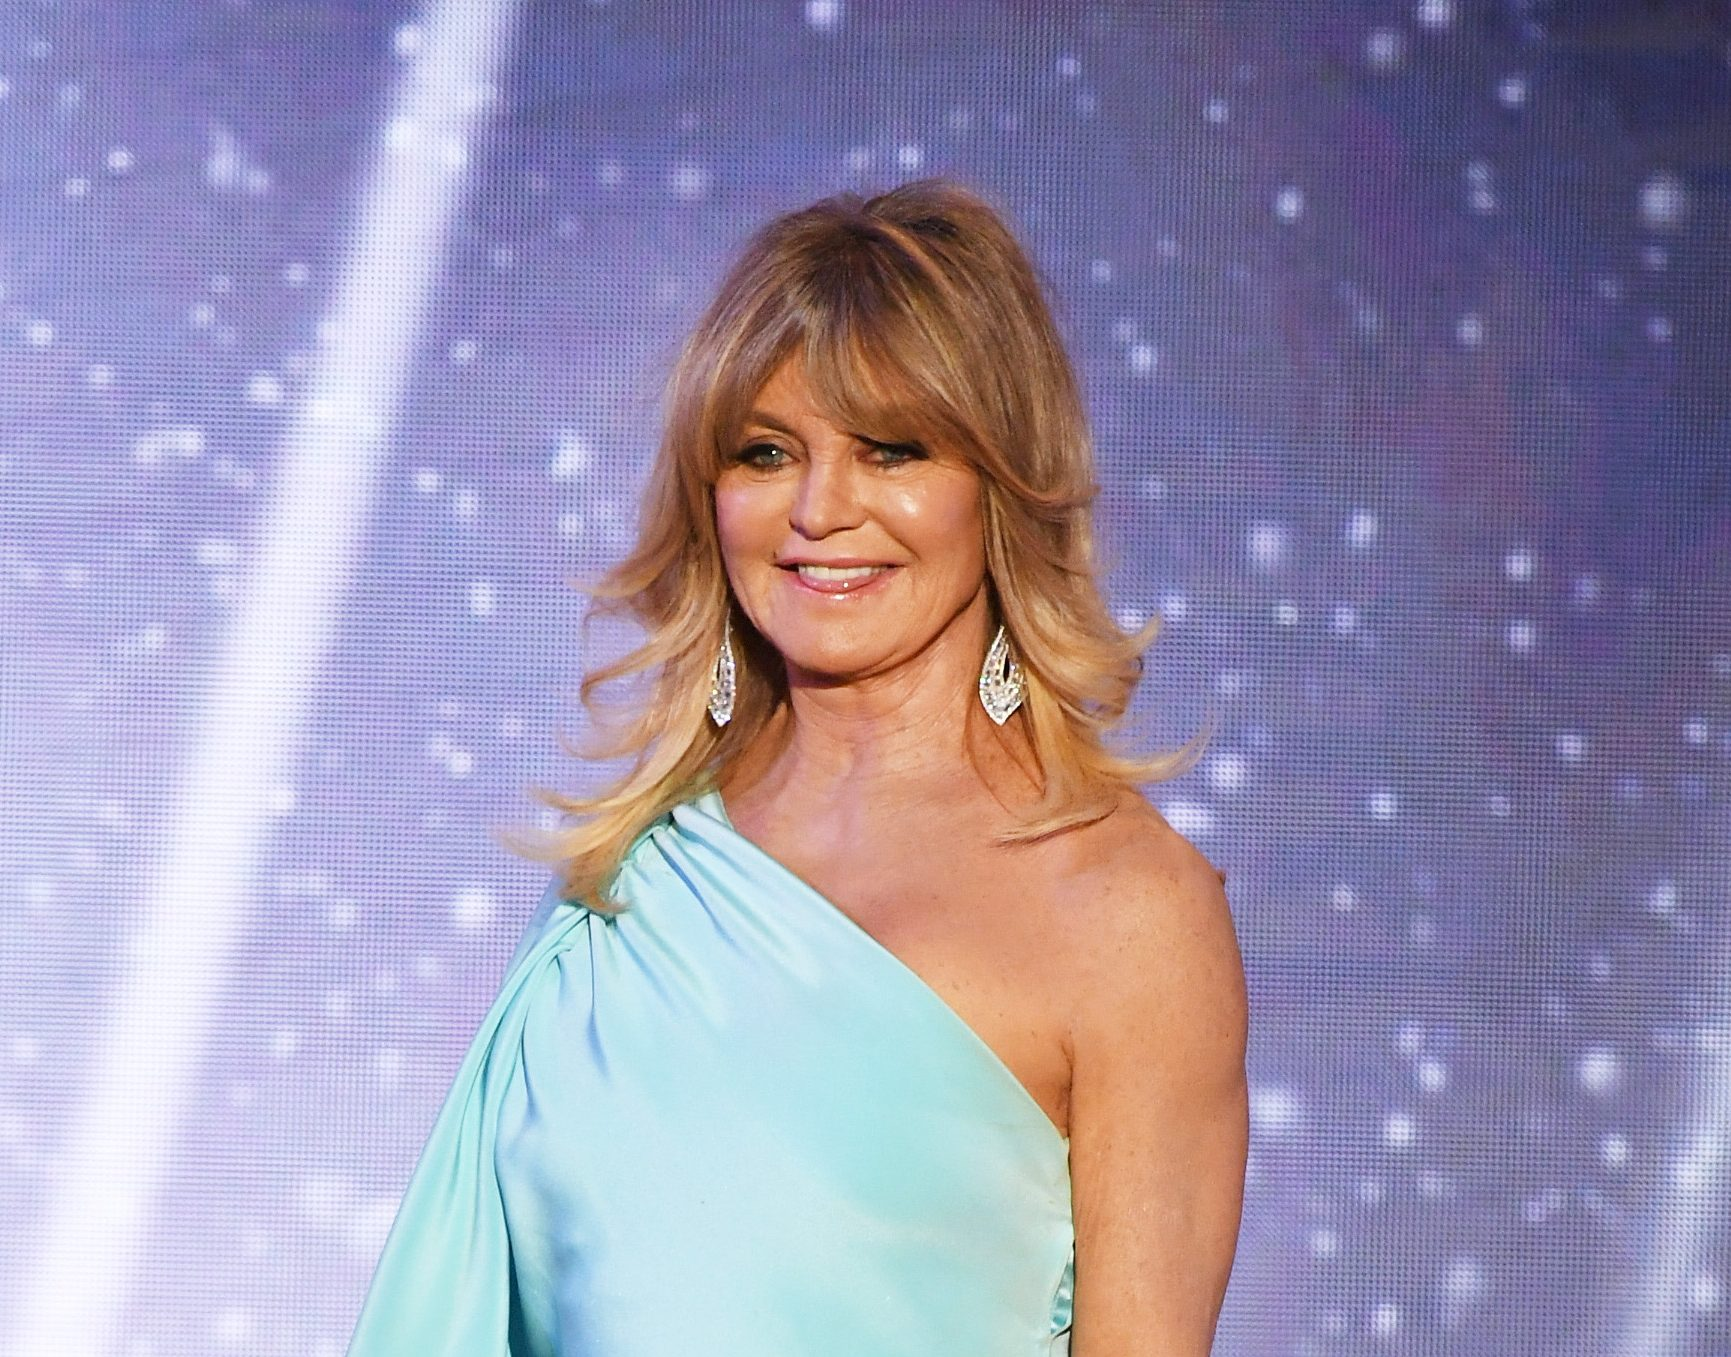 75755d4e edc0 478e 8ec9 1badb271248c gettyimages 908537060 e1605870332364 10 Things You Never Knew About Goldie Hawn